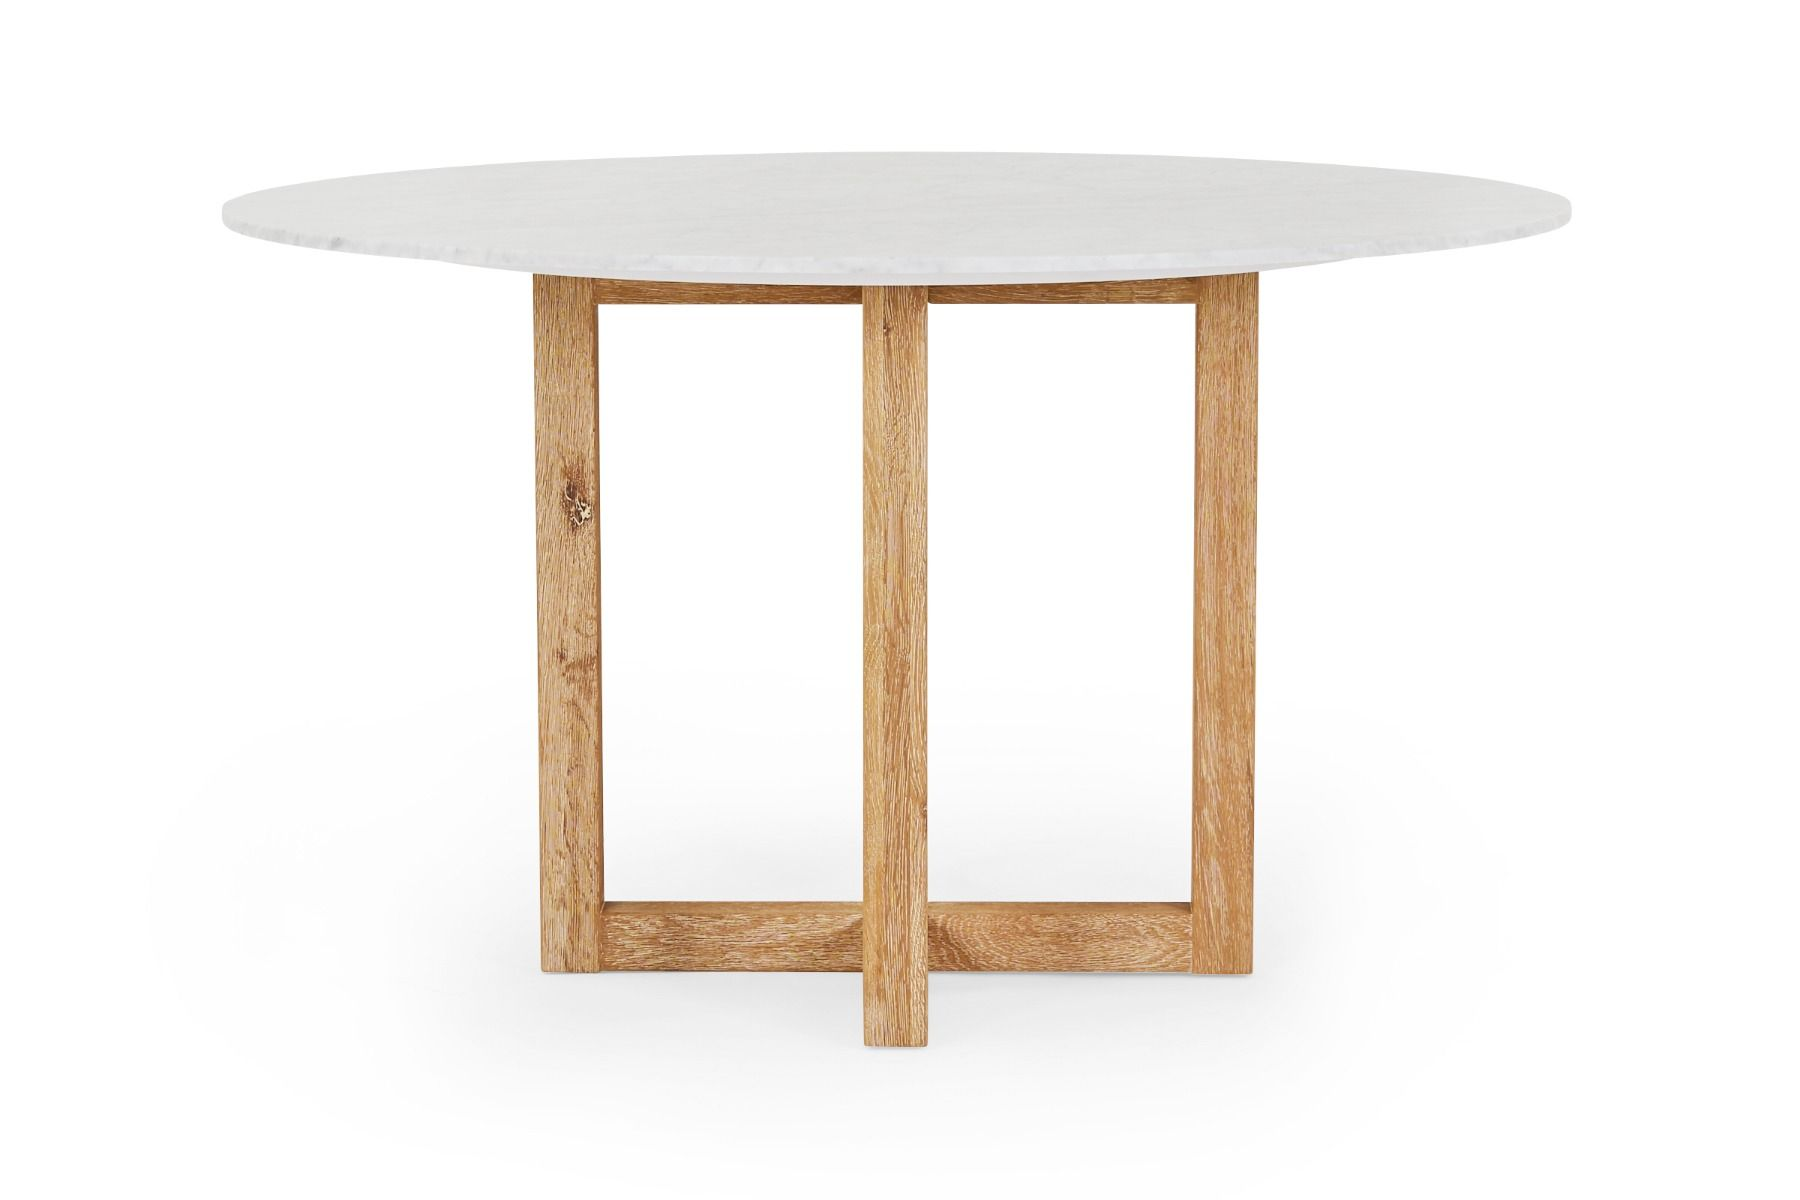 Bronte Round Marble Dining Table by Lounge Lovers, a Dining Chairs for sale on Style Sourcebook